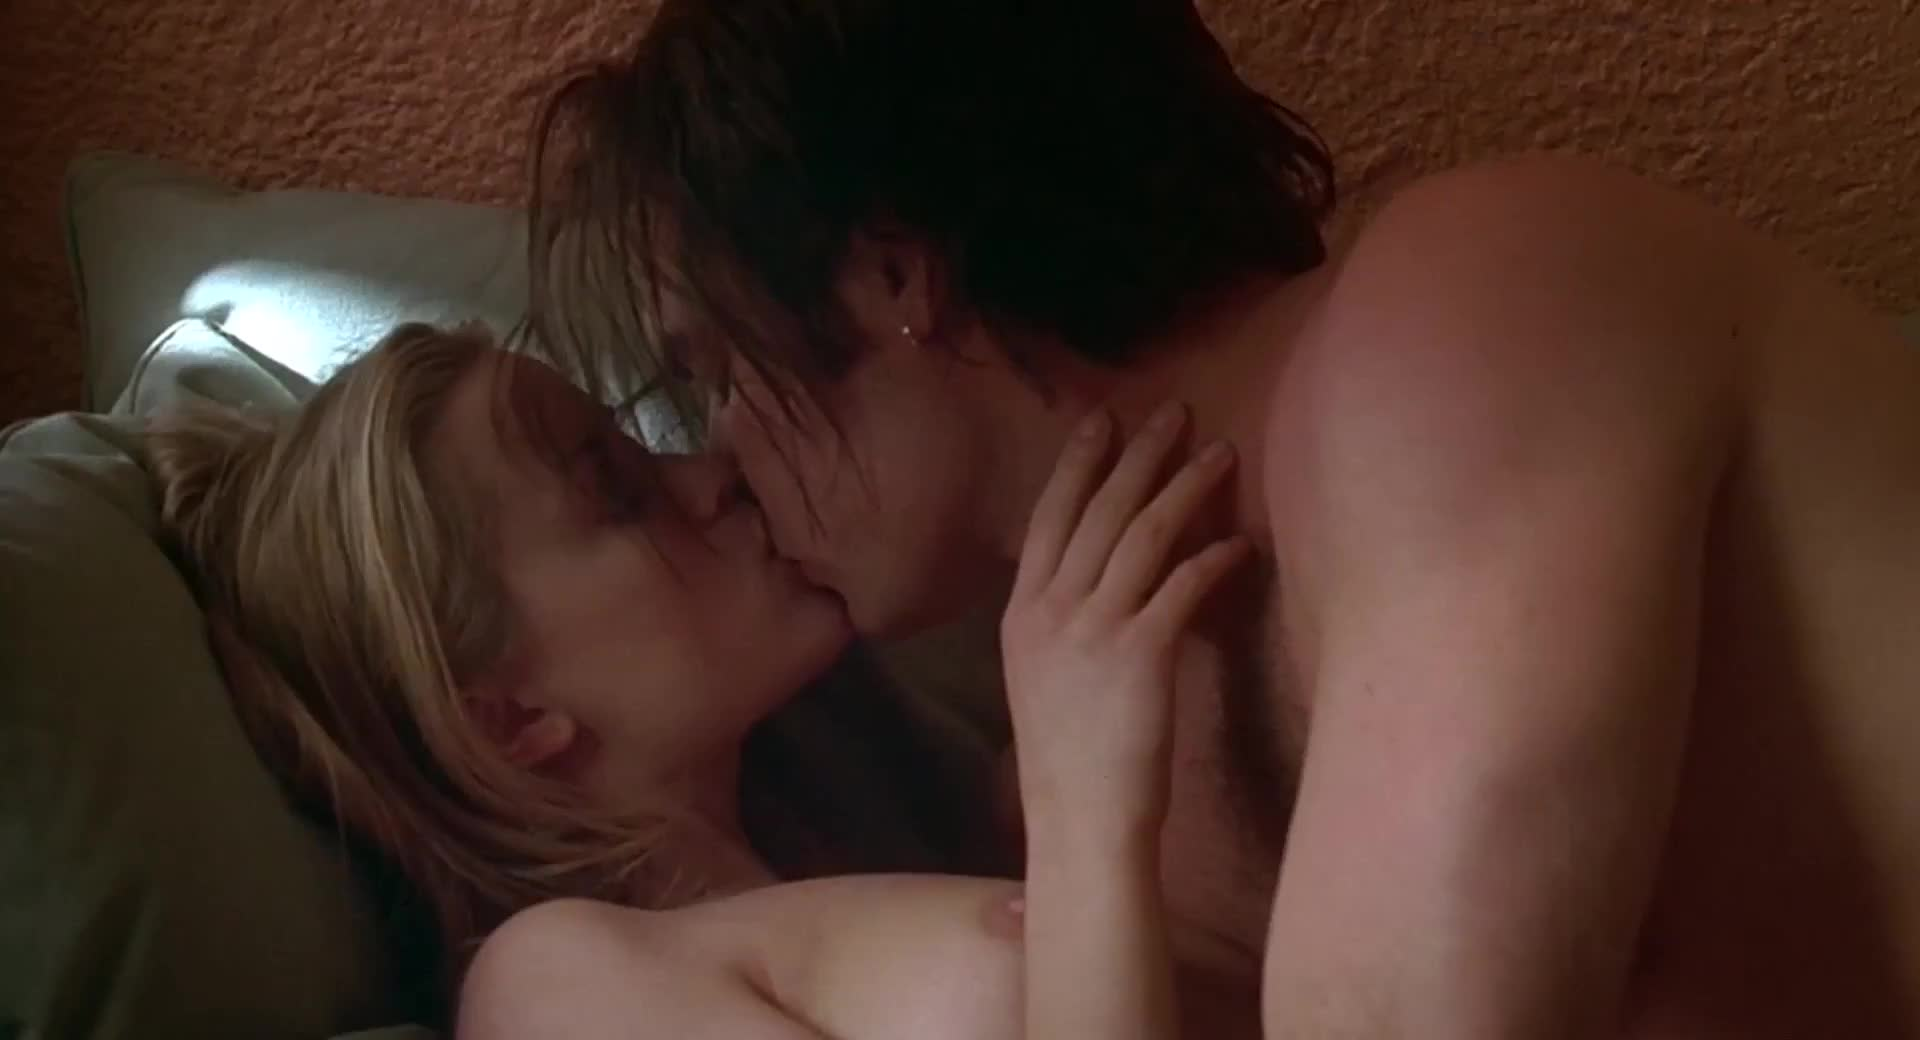 Reese Witherspoon Naked In Twilight Photo